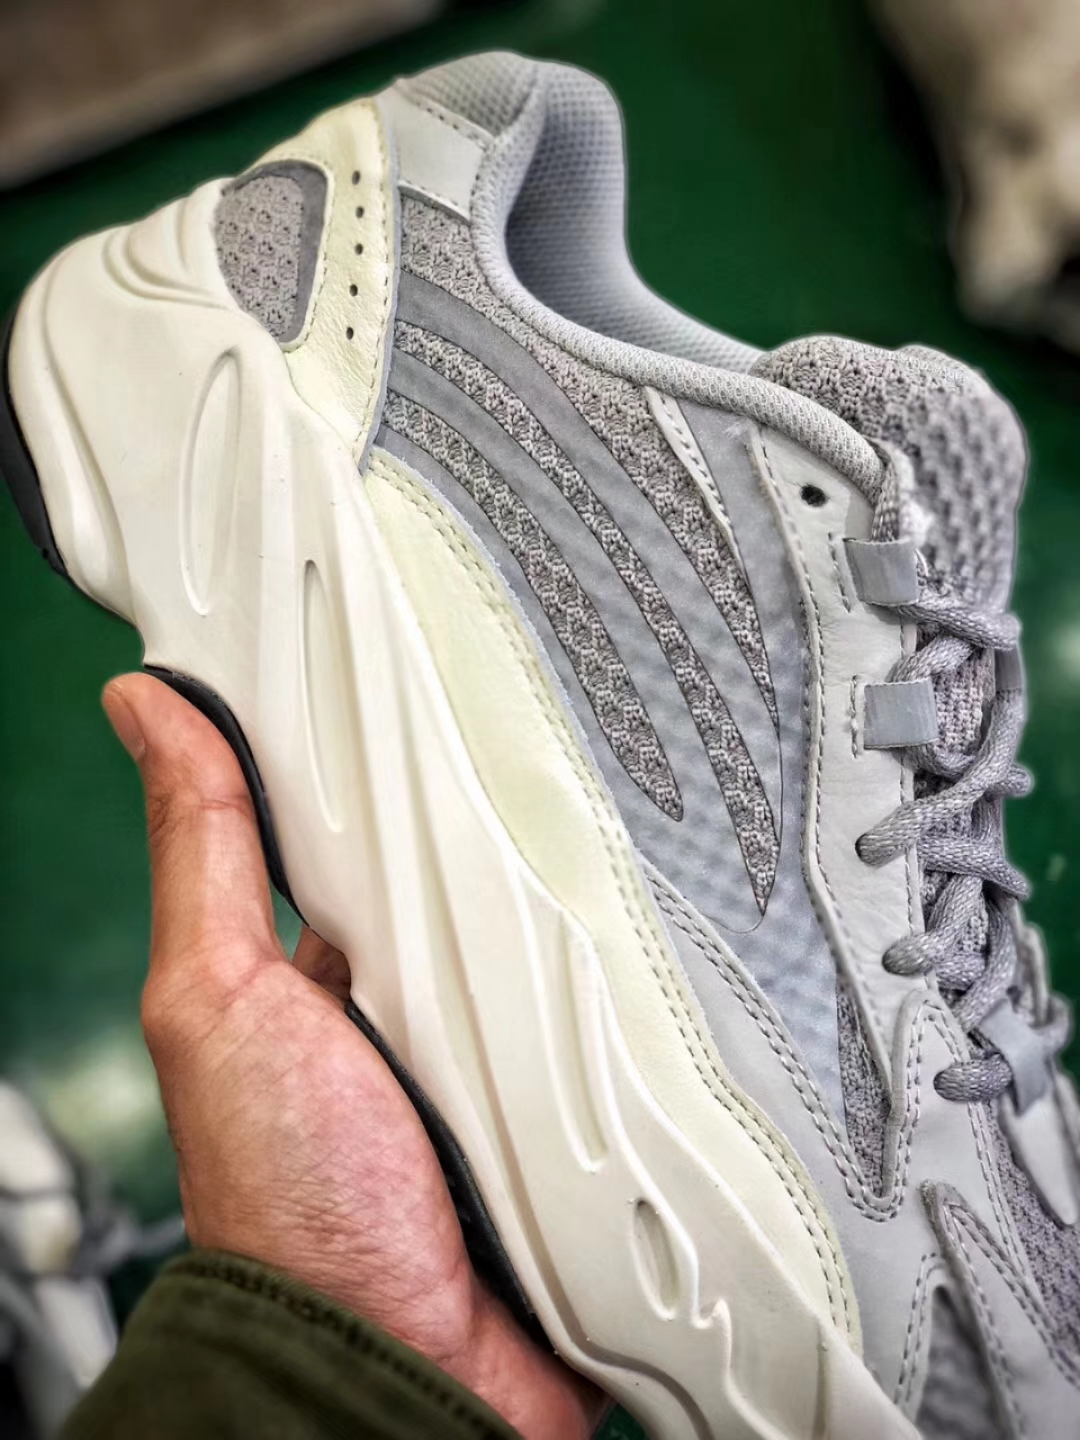 The Adidas Yeezy Boost 700 V2 Static Sneaker Best Quality RepShoes 03